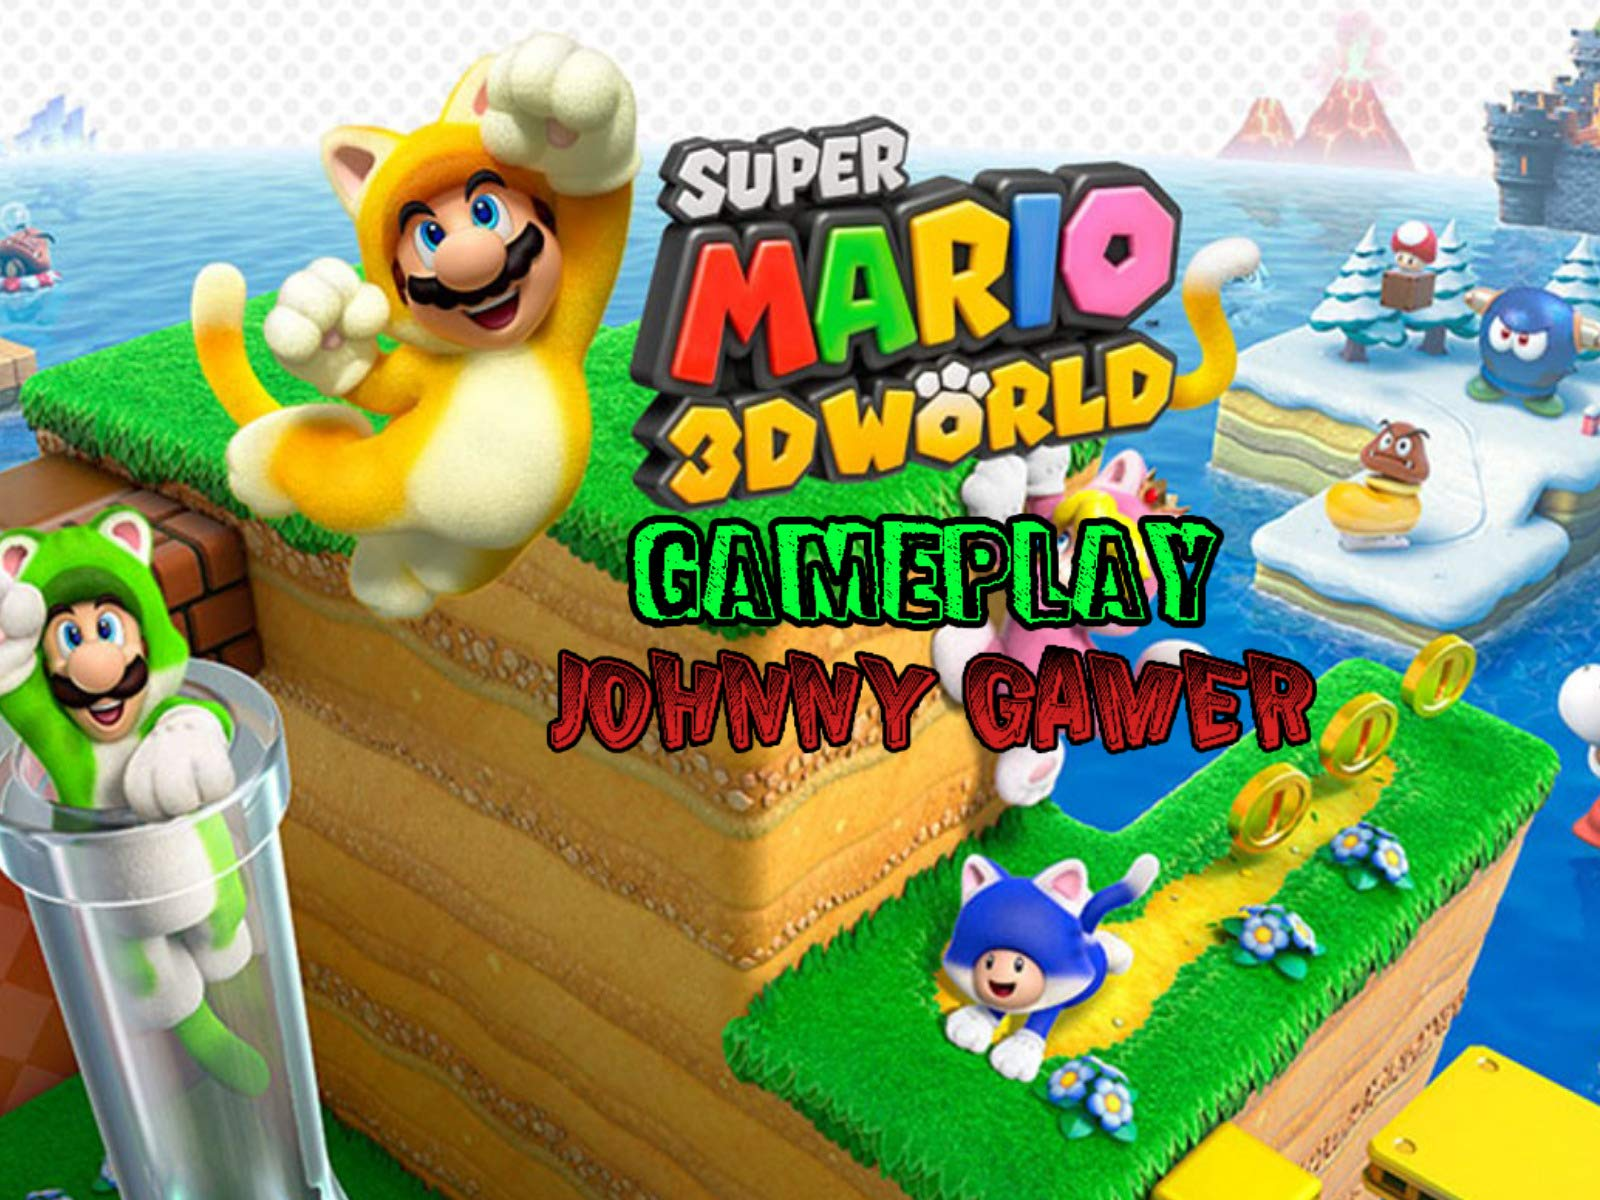 Watch Clip Super Mario 3d World Gameplay Johnny Gamer Prime Video